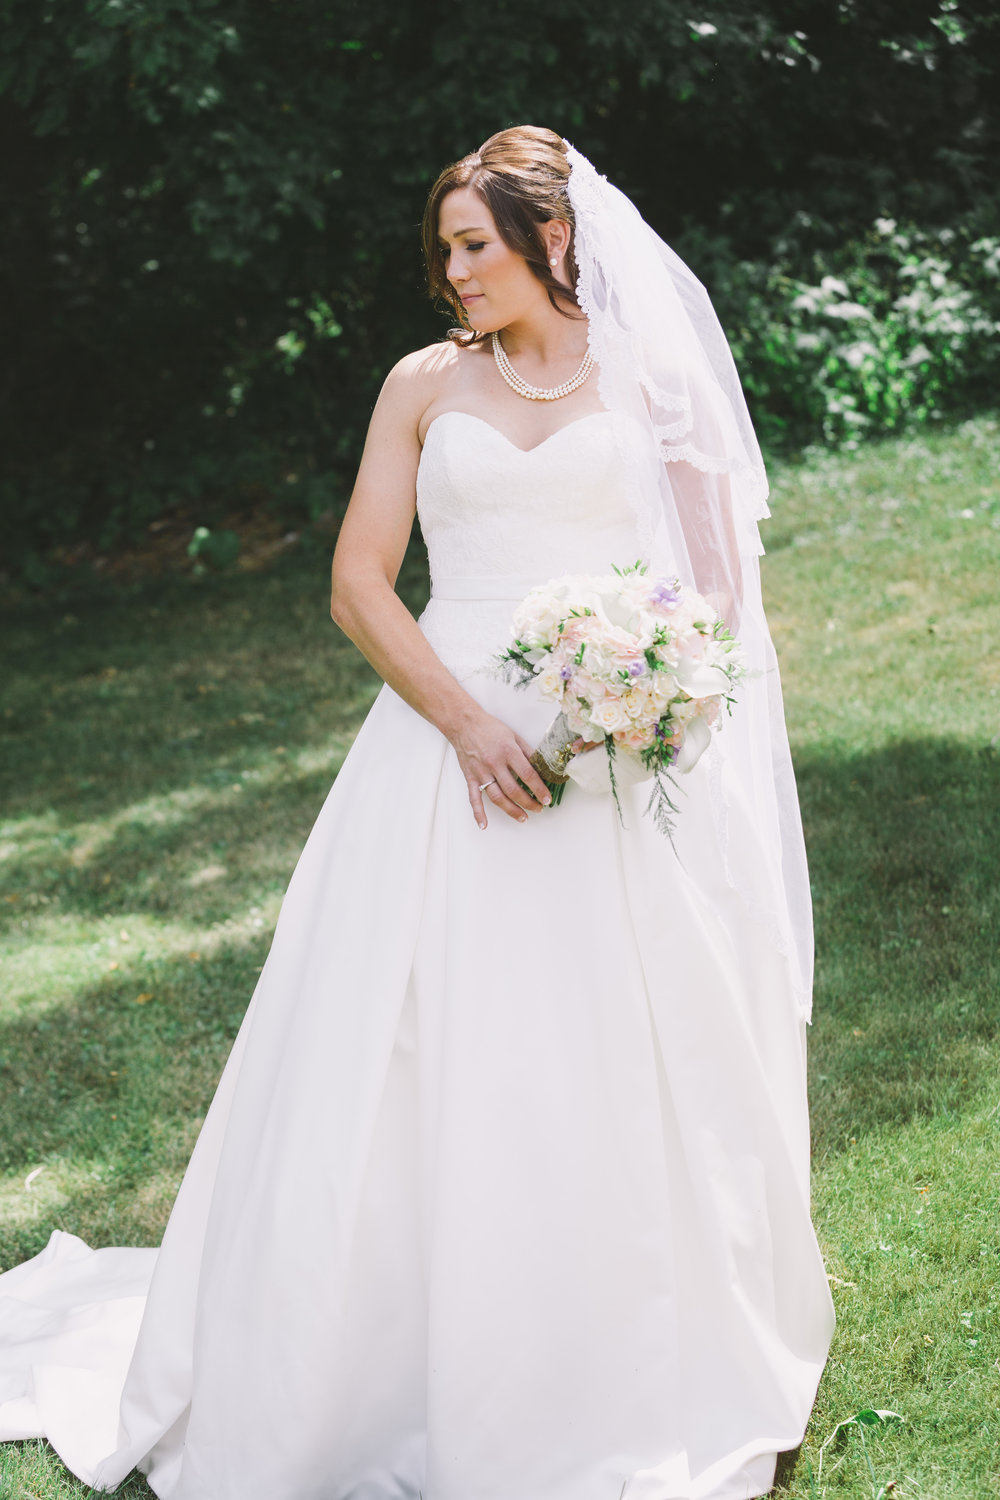 Bride in flowing wedding dress